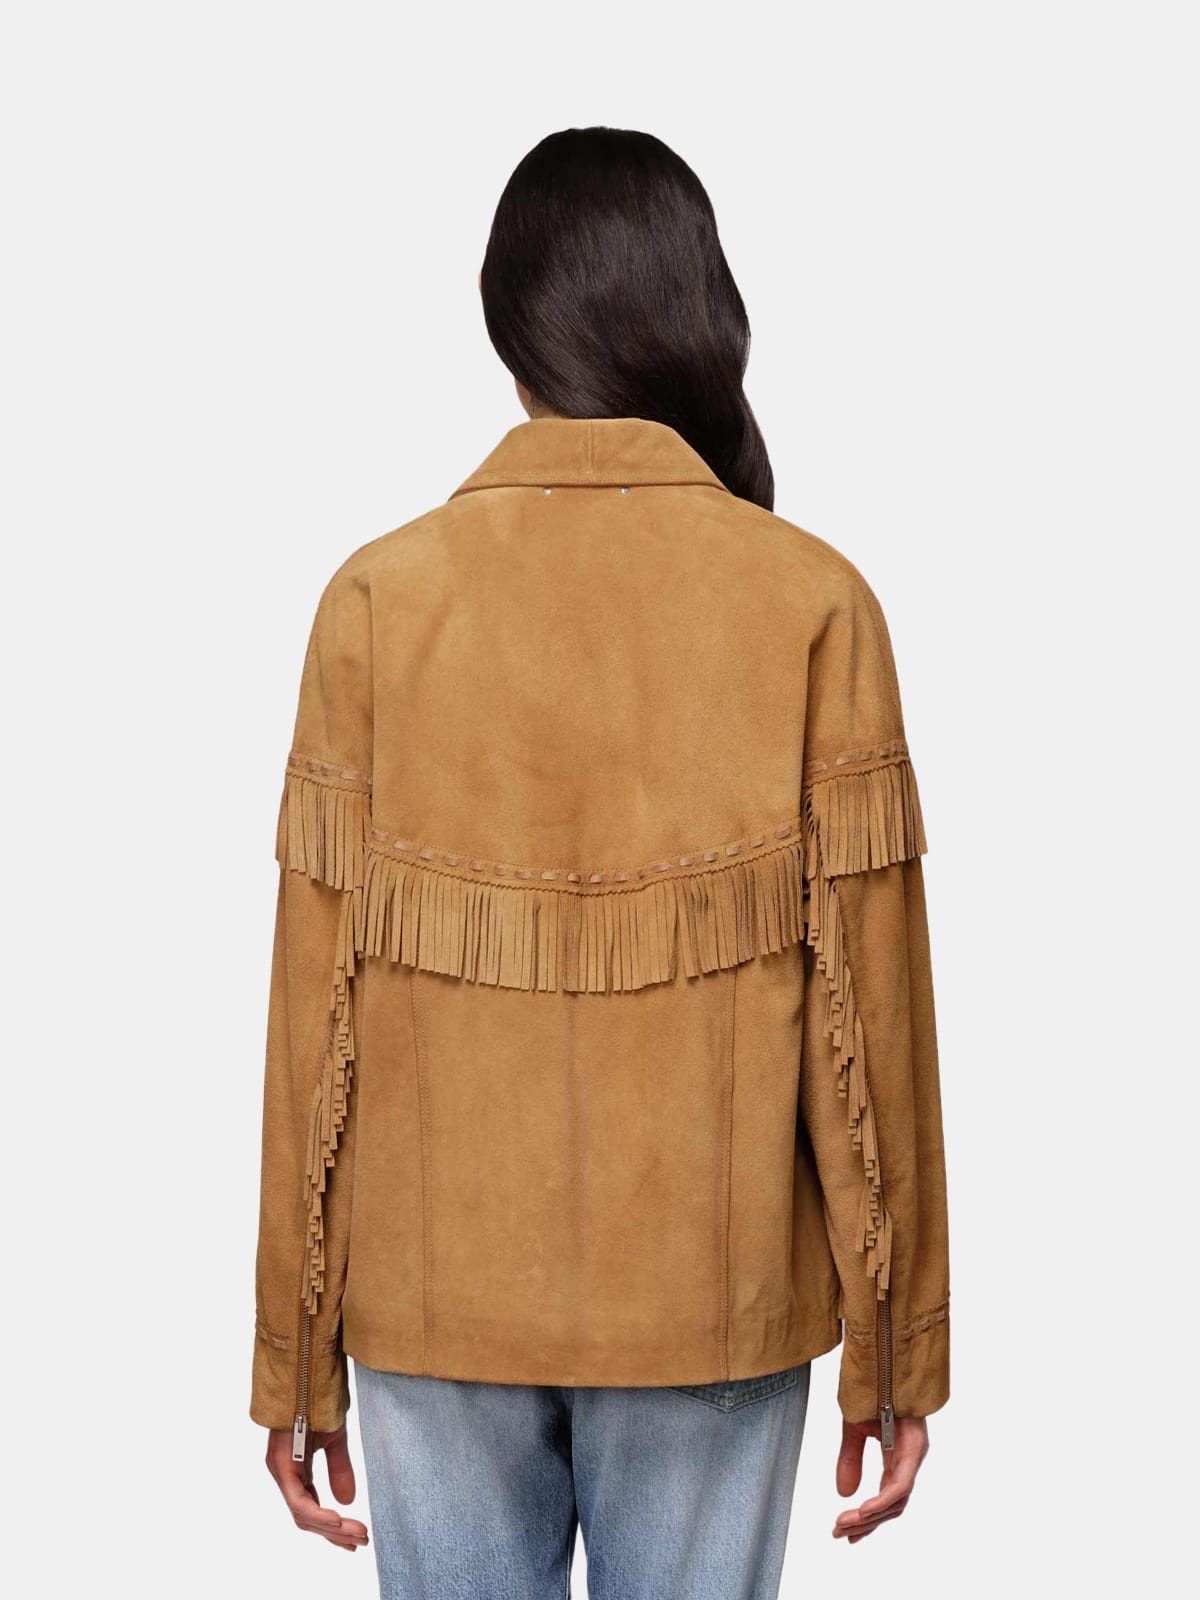 Dallas biker jacket in brown leather with fringes